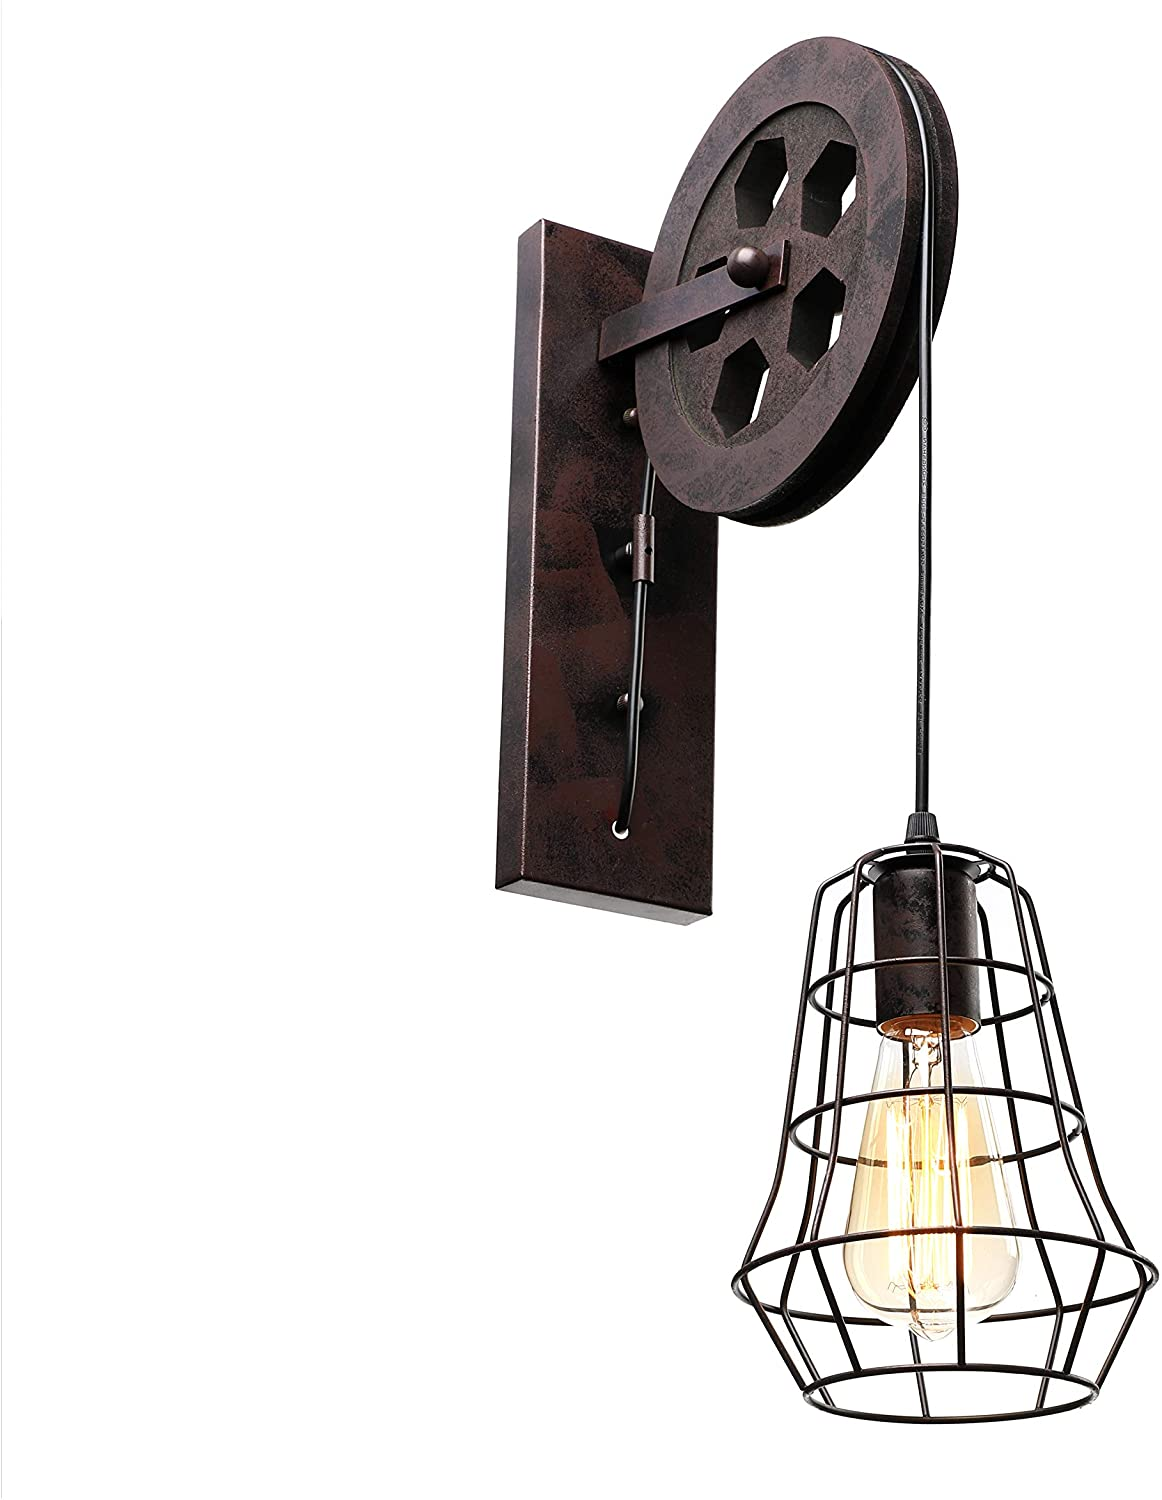 BAYCHEER Personality Edison Lights Lift Pulley Design Vintage Wall Light Industrial Creative 1 Light Indoor Wall Sconce Lighting for Barn Restaurant, Hallway, Living Room, Dining Room